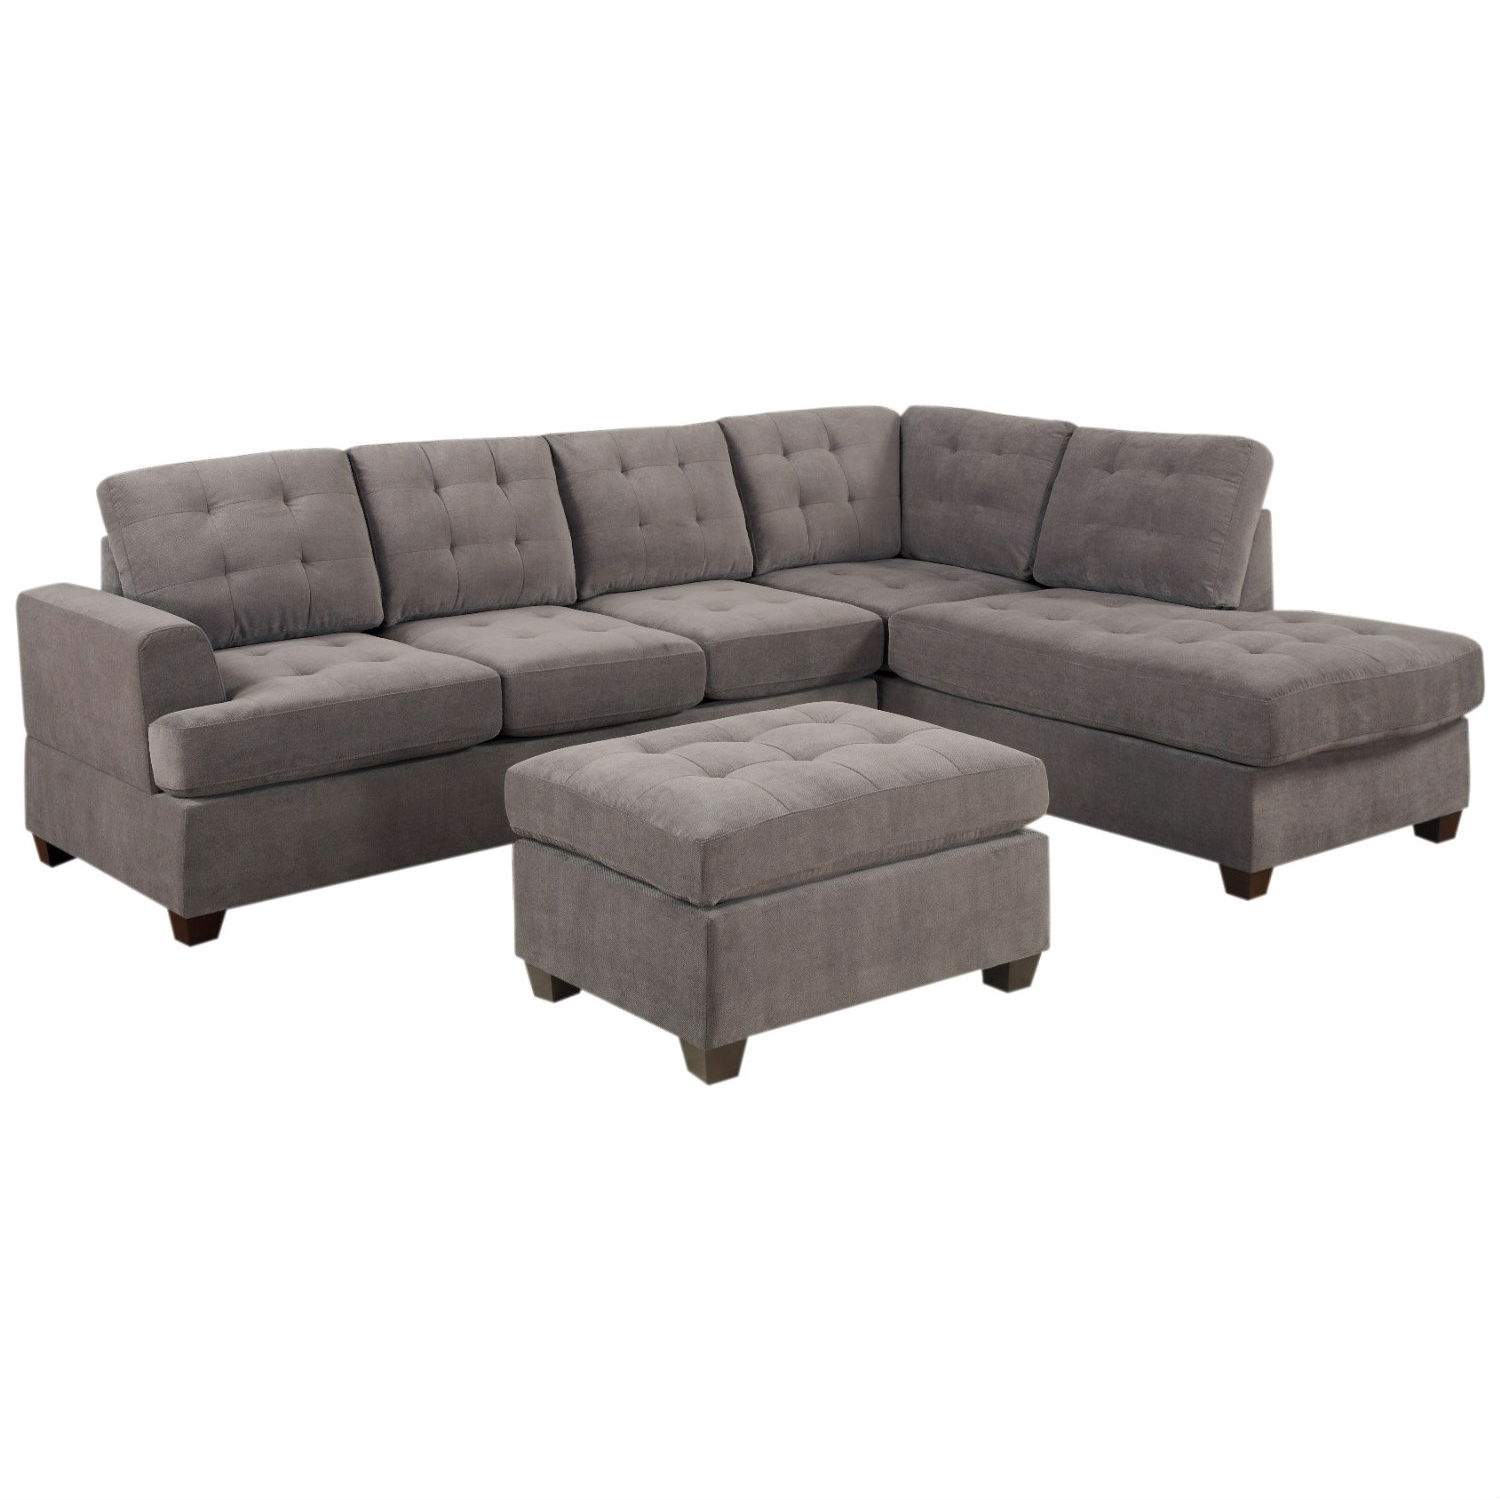 This 3-Piece Reversible Sectional Sofa with Ottoman in Charcoal Microfiber features two pieces upholstered in a waffle suede modern design with accent stitching. It includes a chaise extension and matching cocktail ottoman. Made with hardwood frame and each corner assembly is glued, screwed and corner-blocked assembly required; All legs are free of knots hardwood material elegant, classic and durable; All fabrics are special select for wearability and durability; All seats cusions are made by highest standard lite weight form and spring material for easy arrangement if needed.